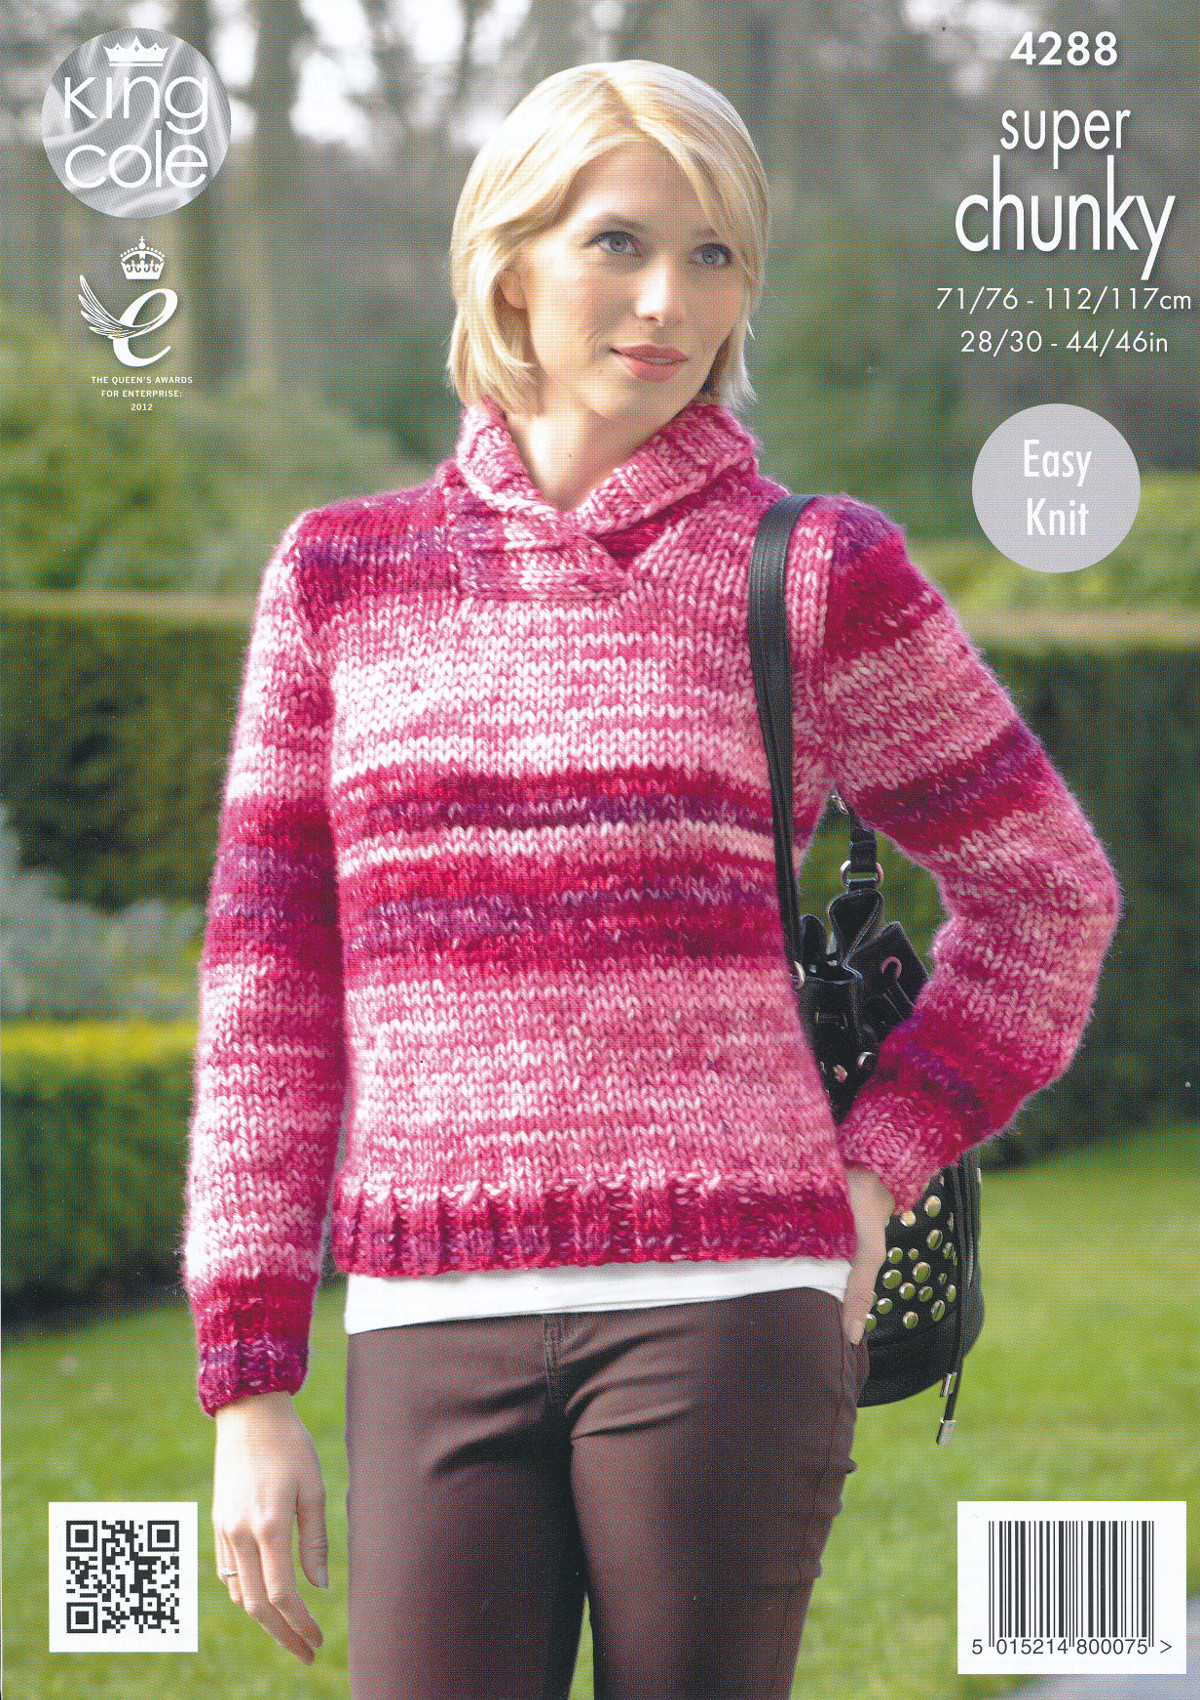 Super Chunky Jumper Knitting Pattern : Ladies Super Chunky Knitting Pattern King Cole Ribbed Jacket Sweater Jumper 4...